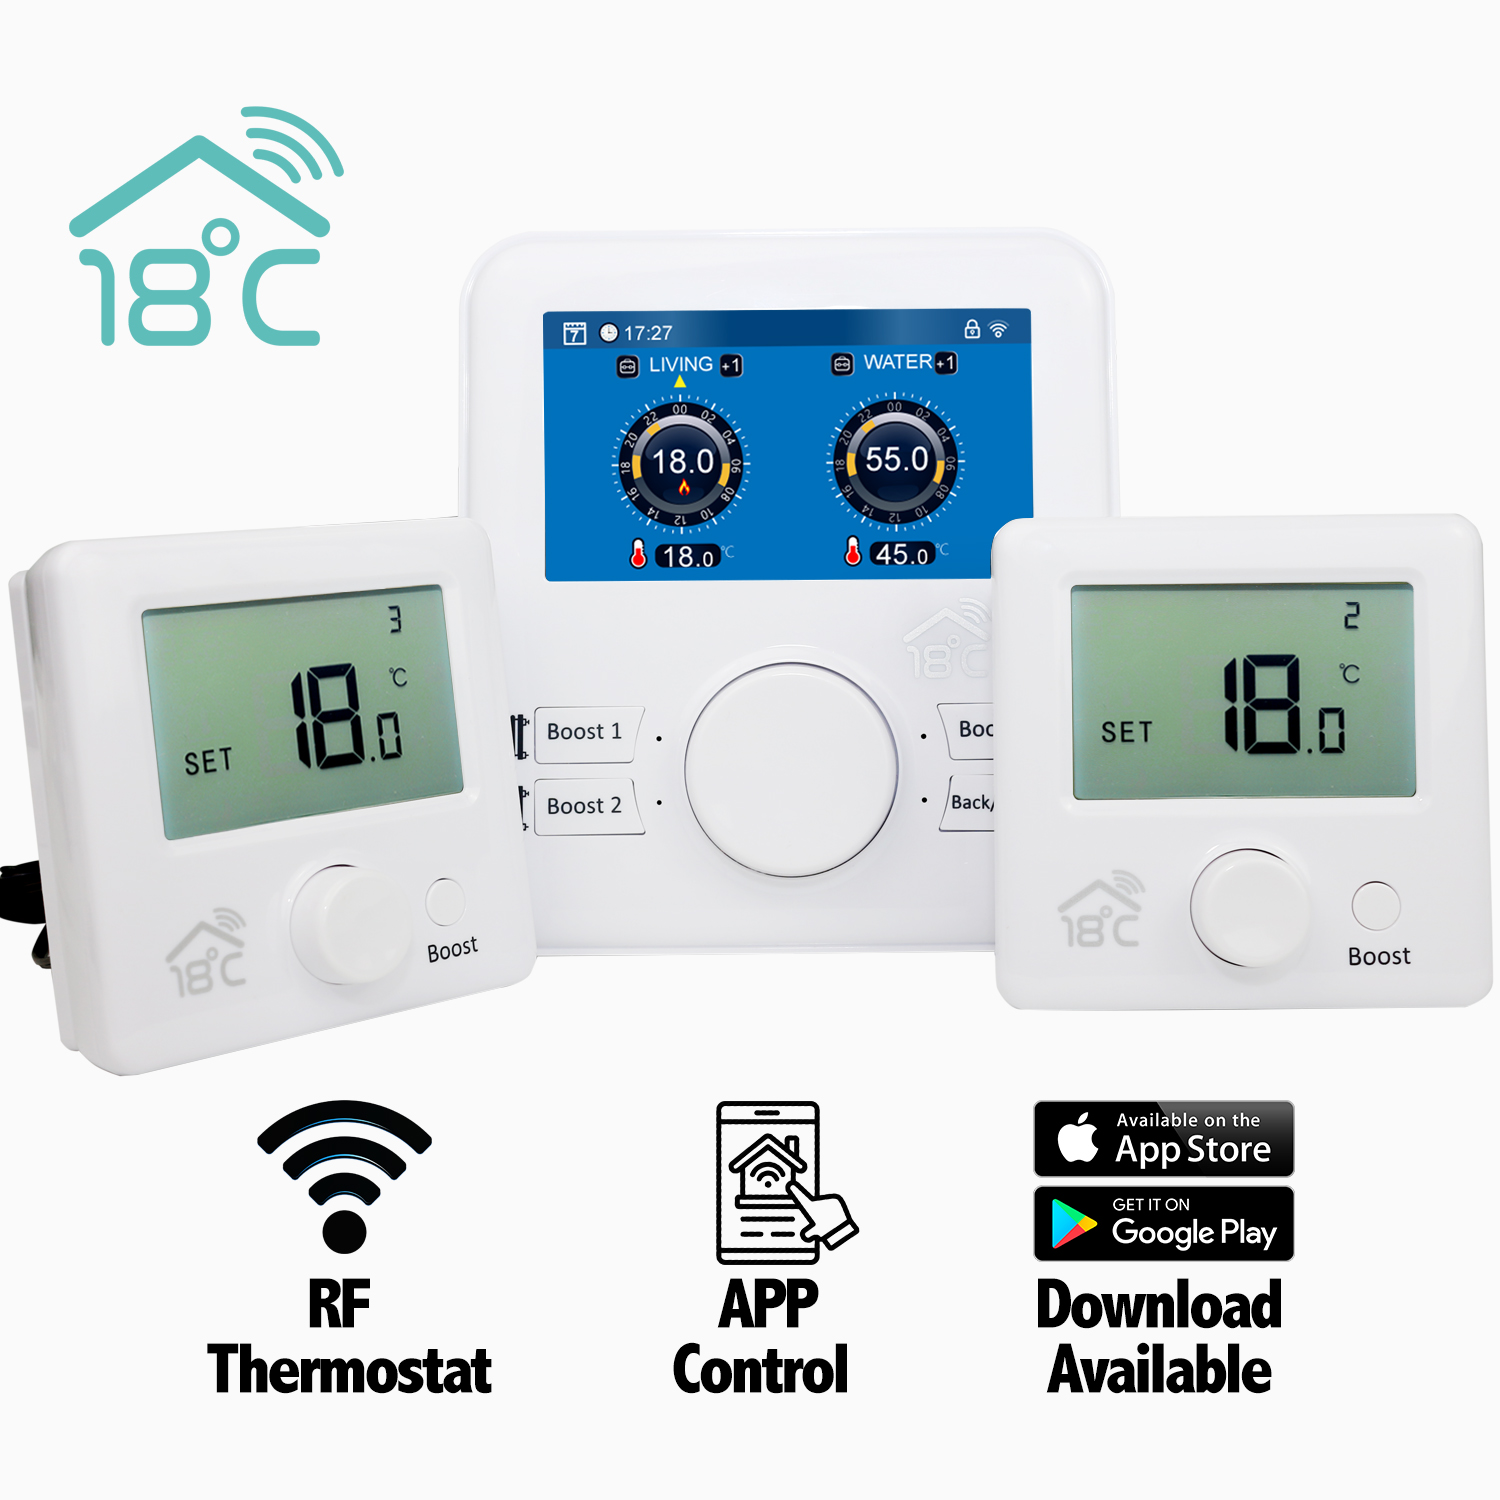 18 degrees Smart Heating Controls for Oil Boilers - WiFi Thermostat Ireland - thermostatic Controller 2 zone Suntask